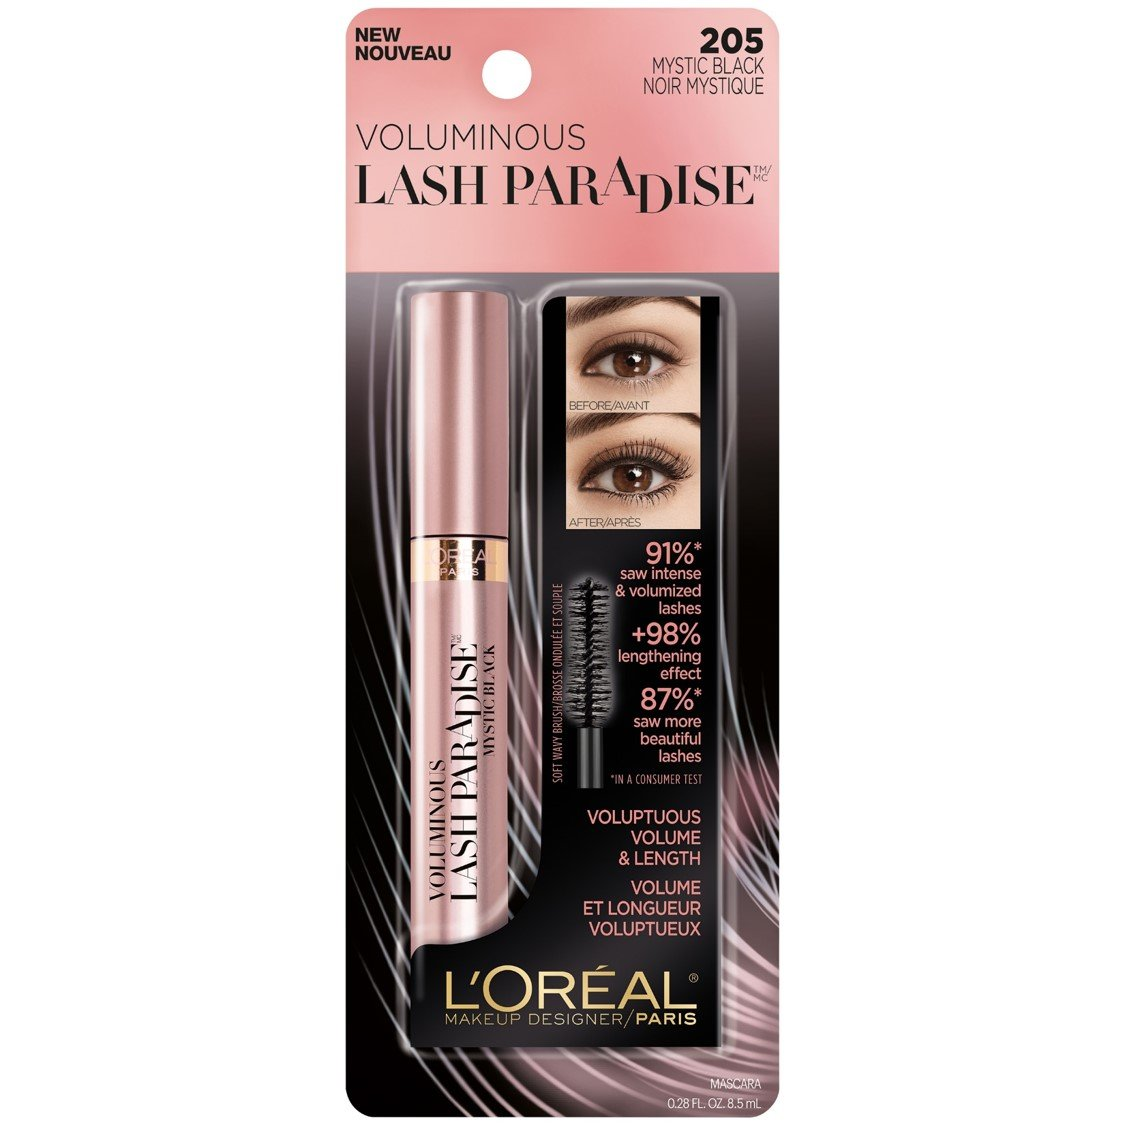 Voluminous Lash Primer by L'Oreal #13